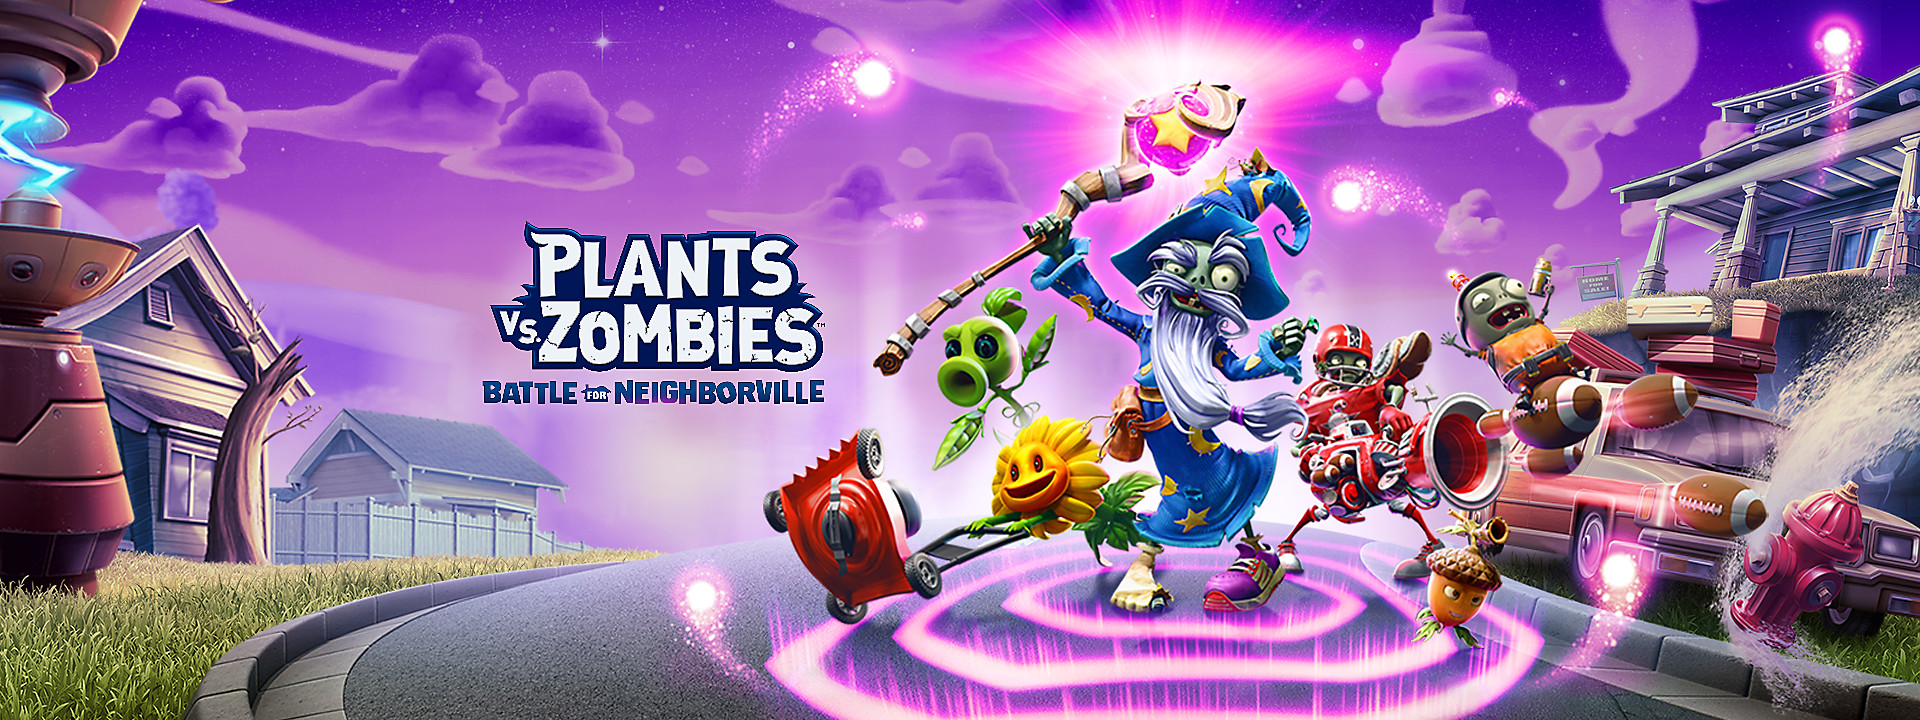 Plants Vs Zombies Battle For Neighborville Game Ps4 Playstation